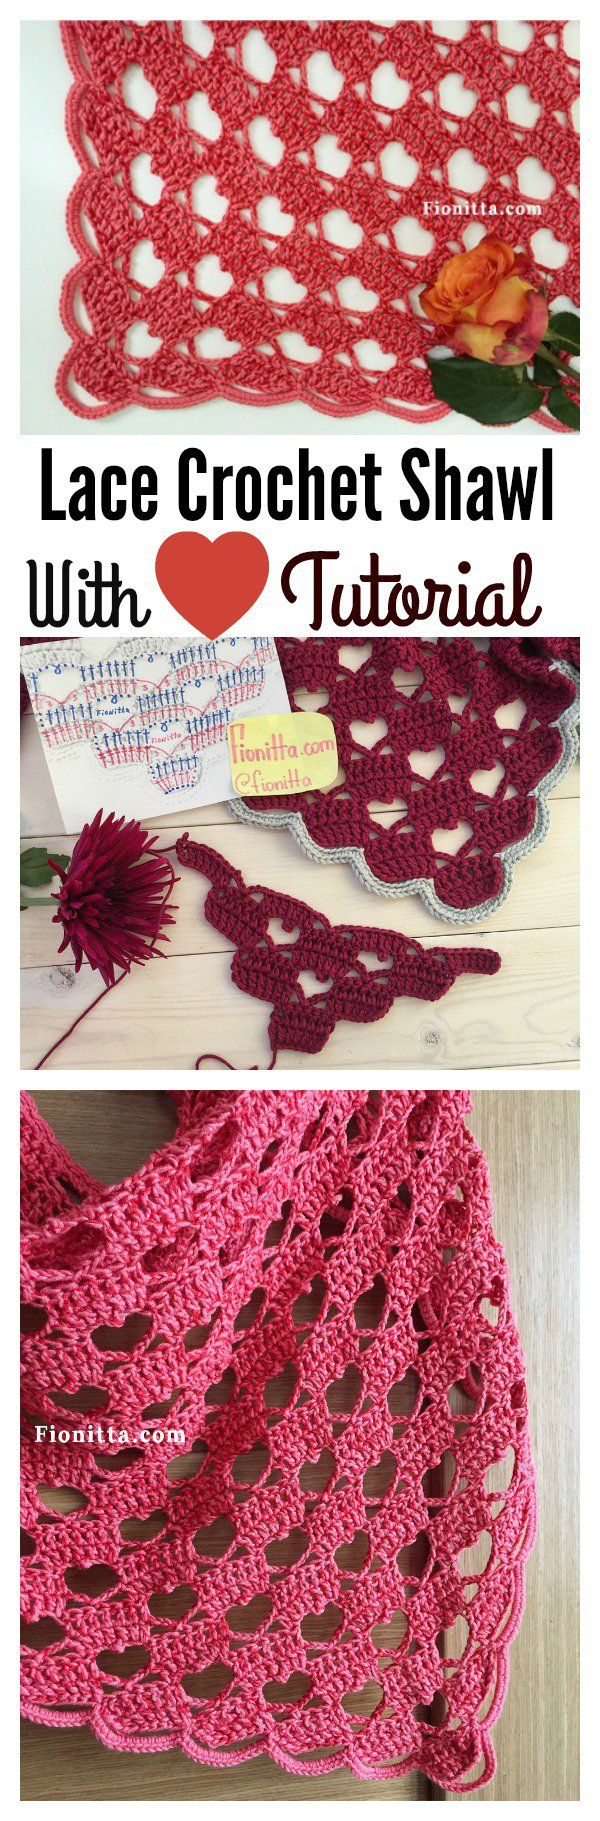 Lacy Crochet Shawl Pattern with Hearts Video Tutorial | Chal ...